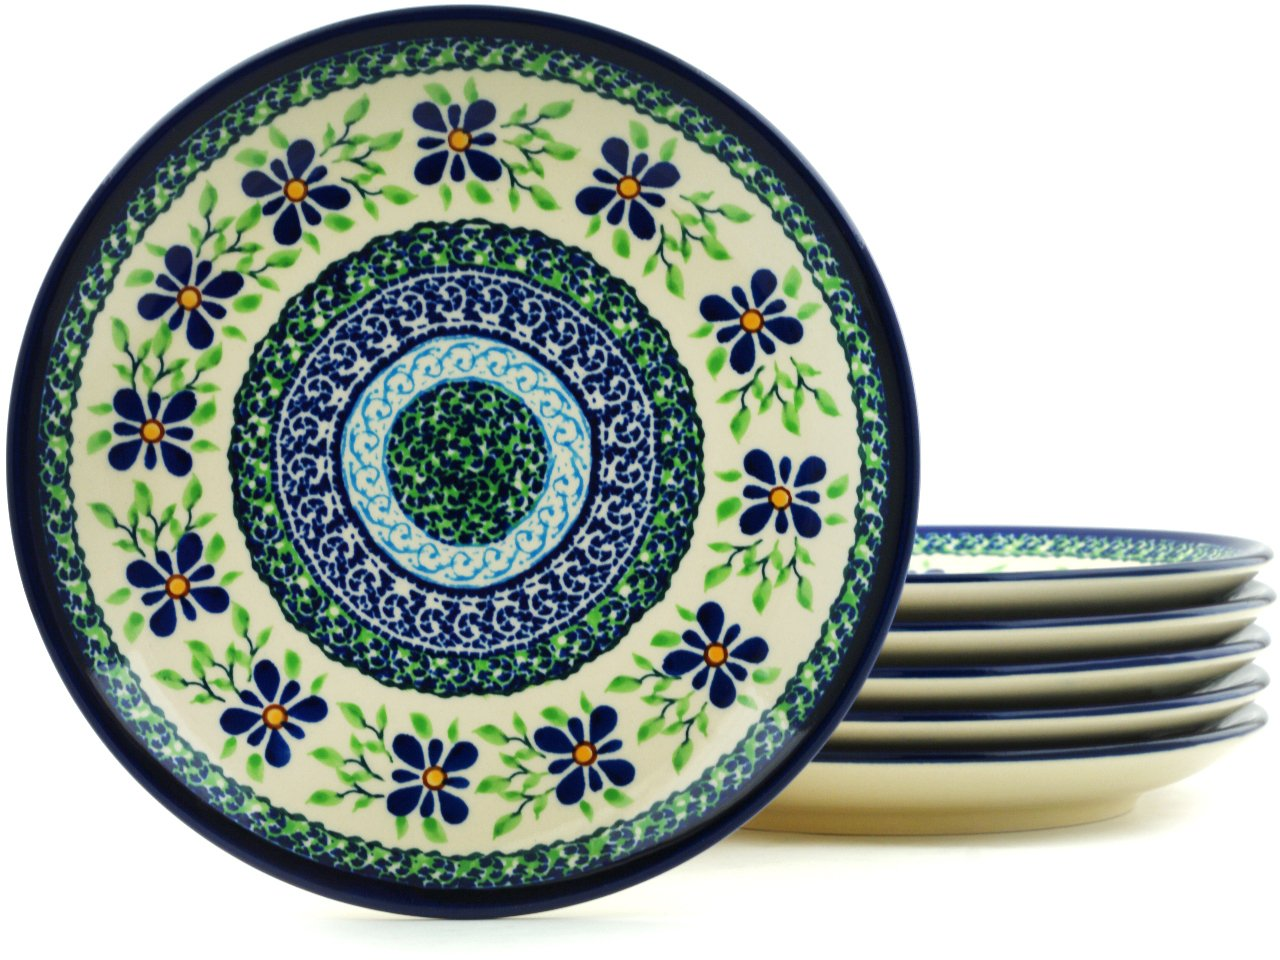 Polish Pottery Set of 6 Dessert/Side Plates - 7½-inch diameter (Sweet Violet Theme) + Certificate of Authenticity by Polmedia Polish Pottery